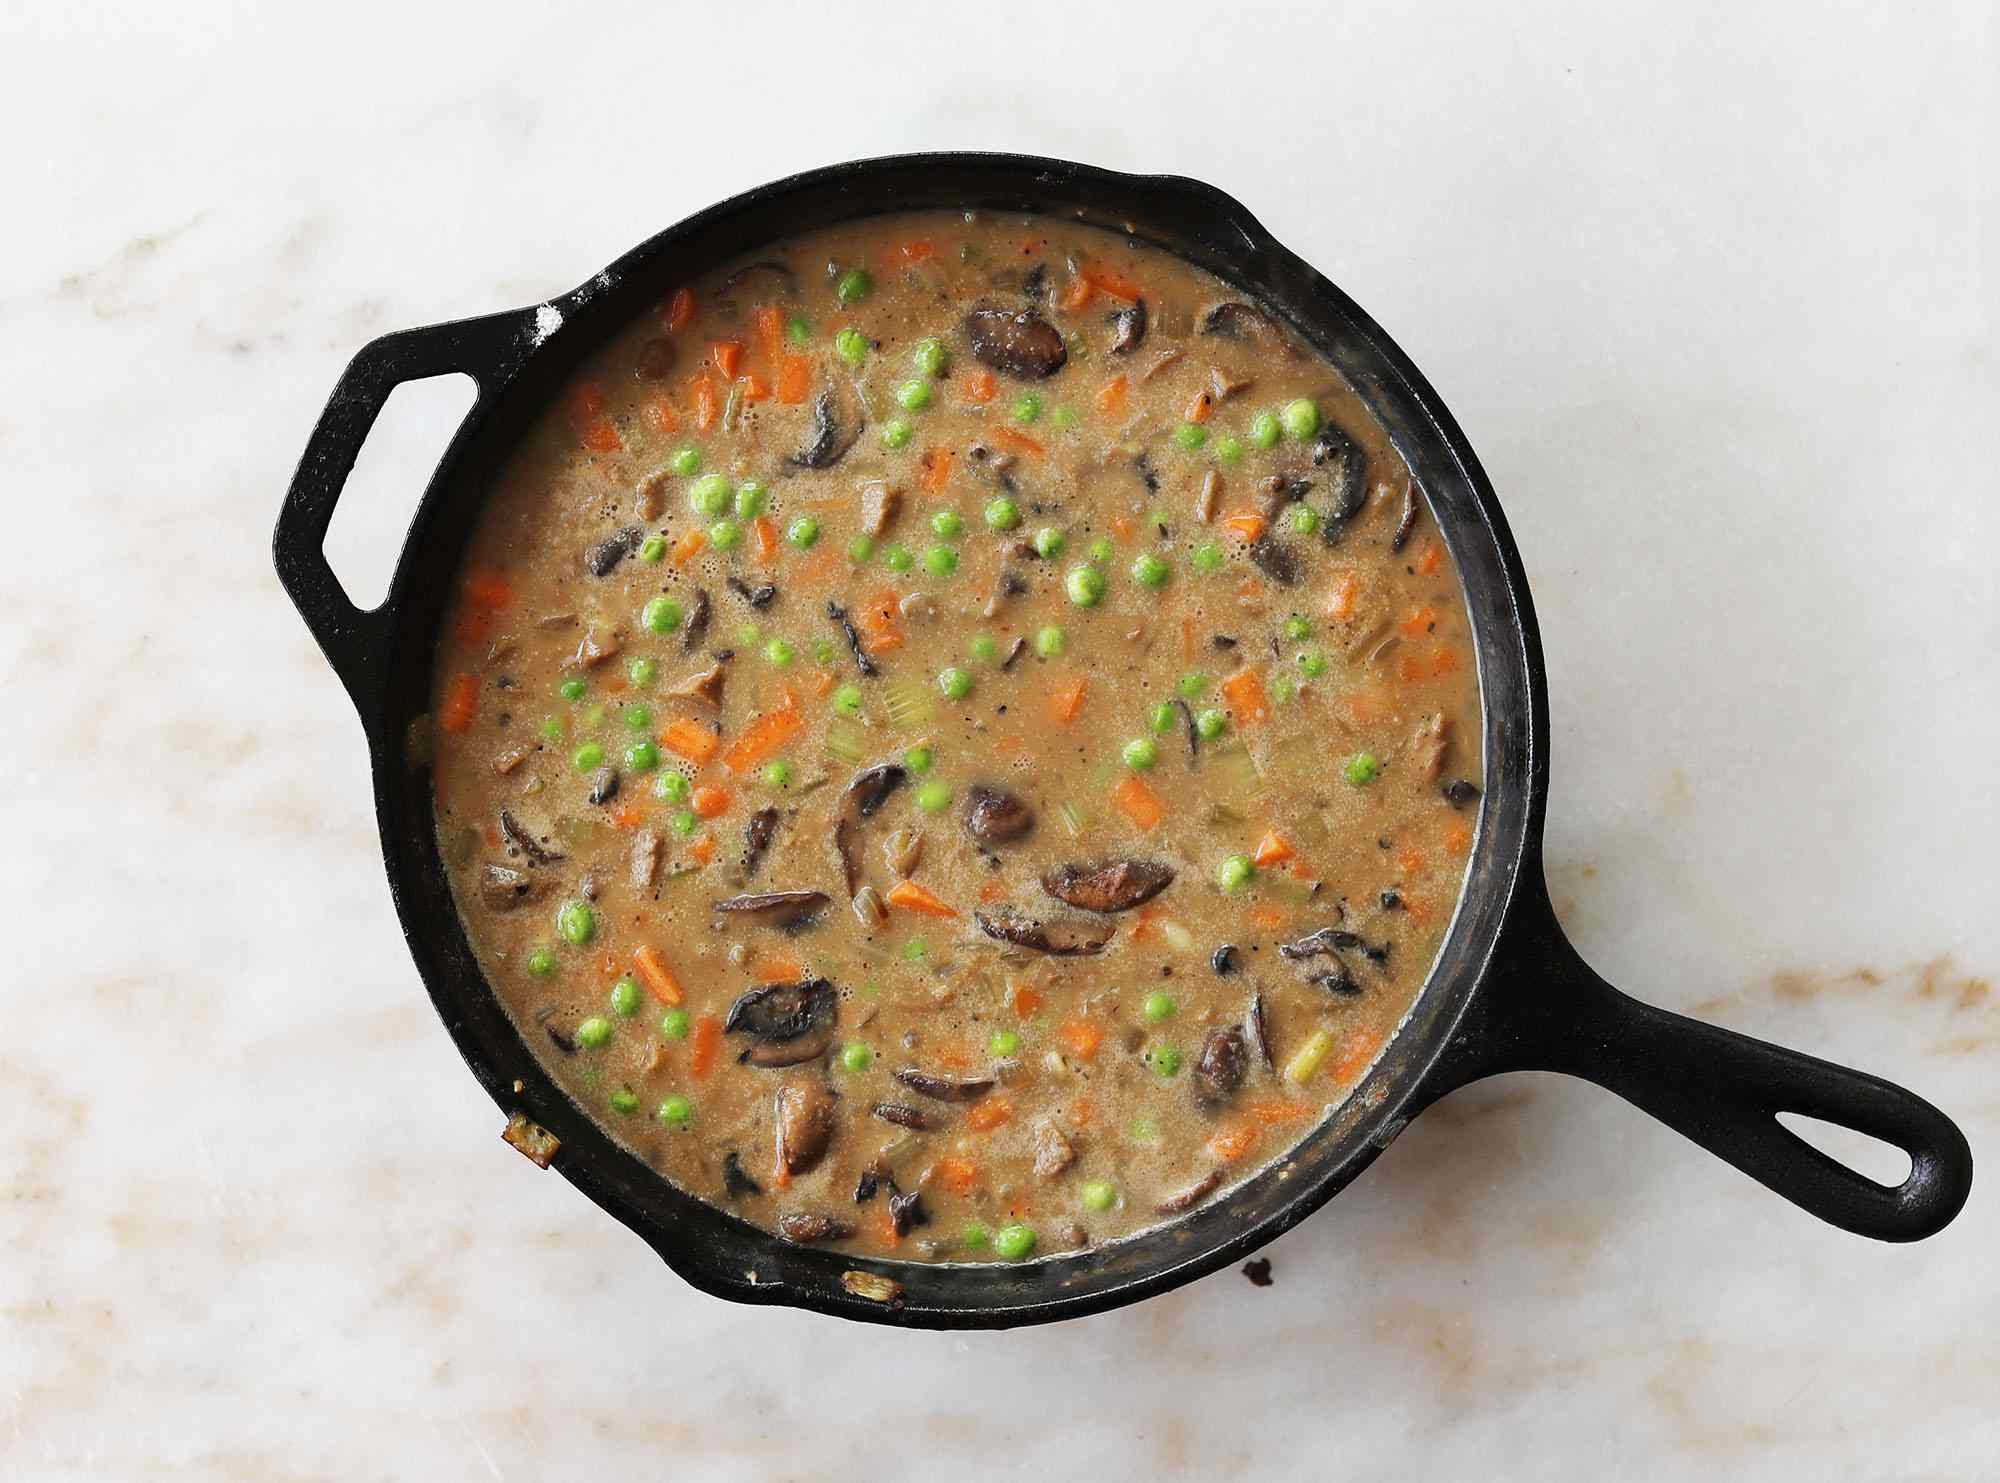 pot pie filling in a cast iron skillet